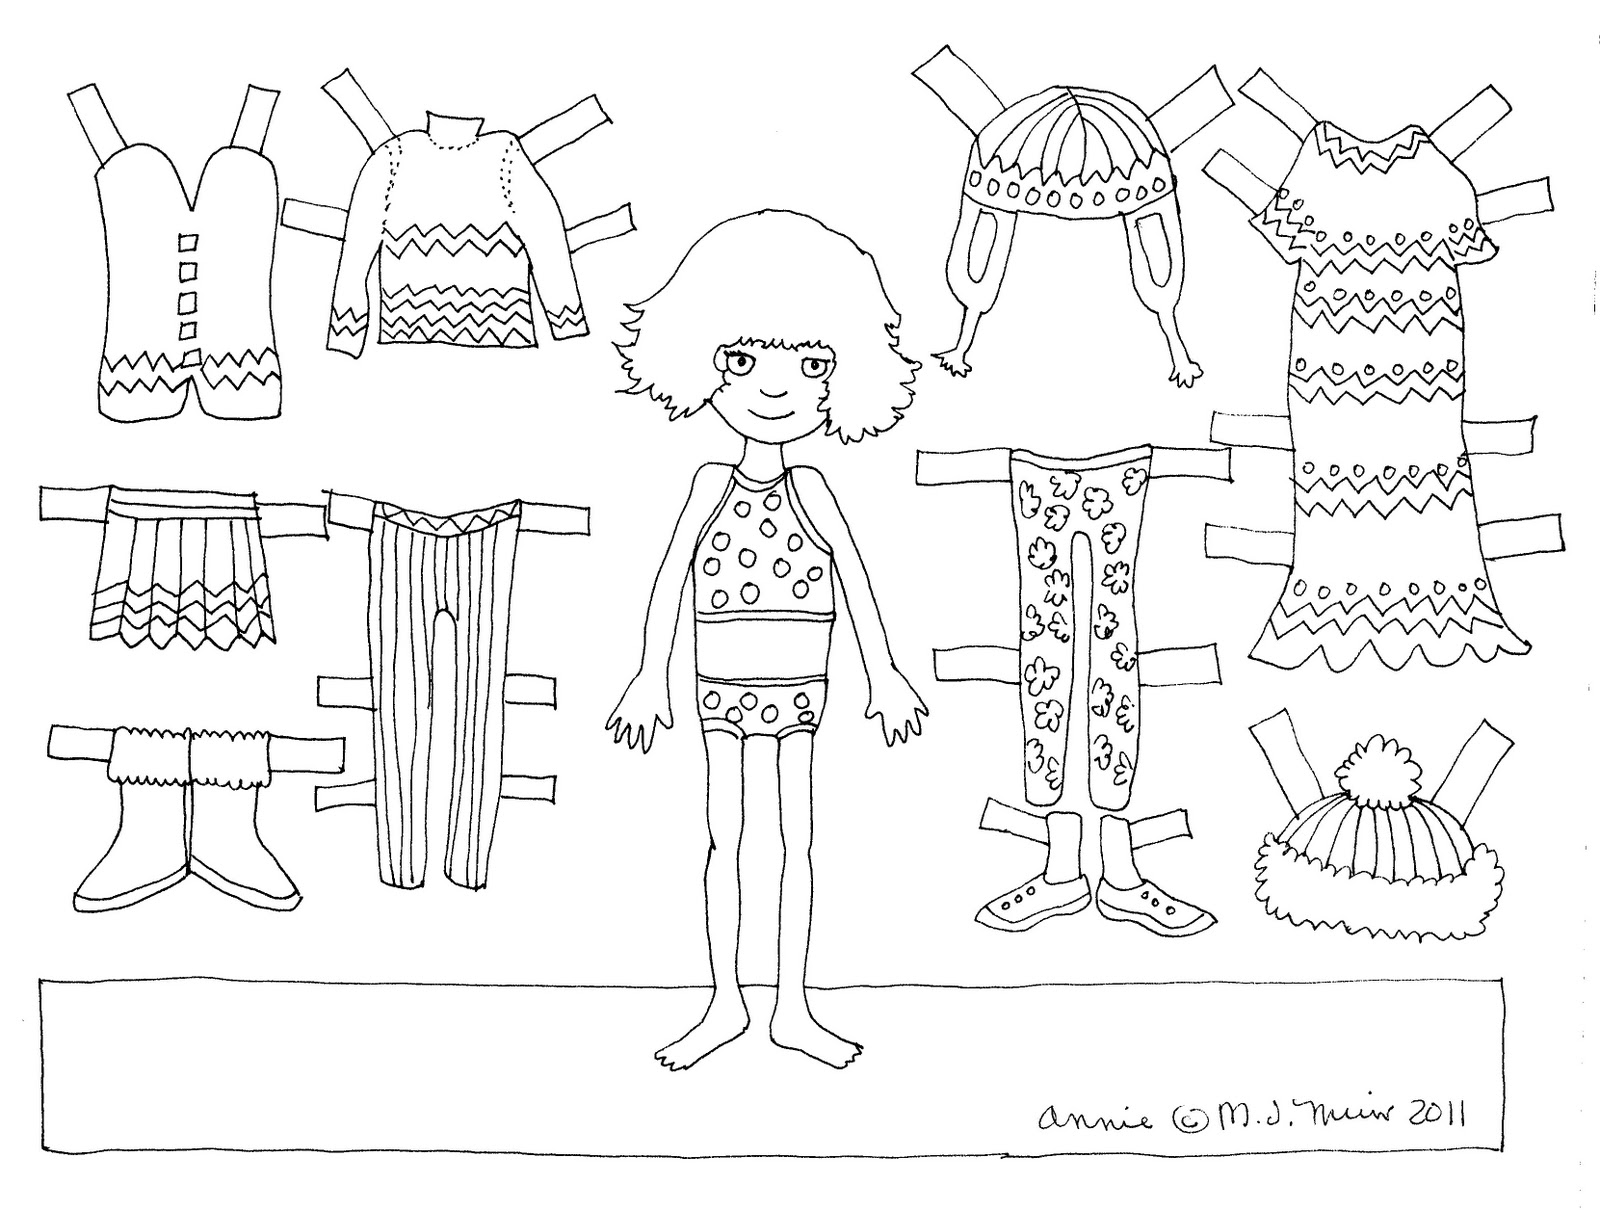 Paper doll coloring pages to download